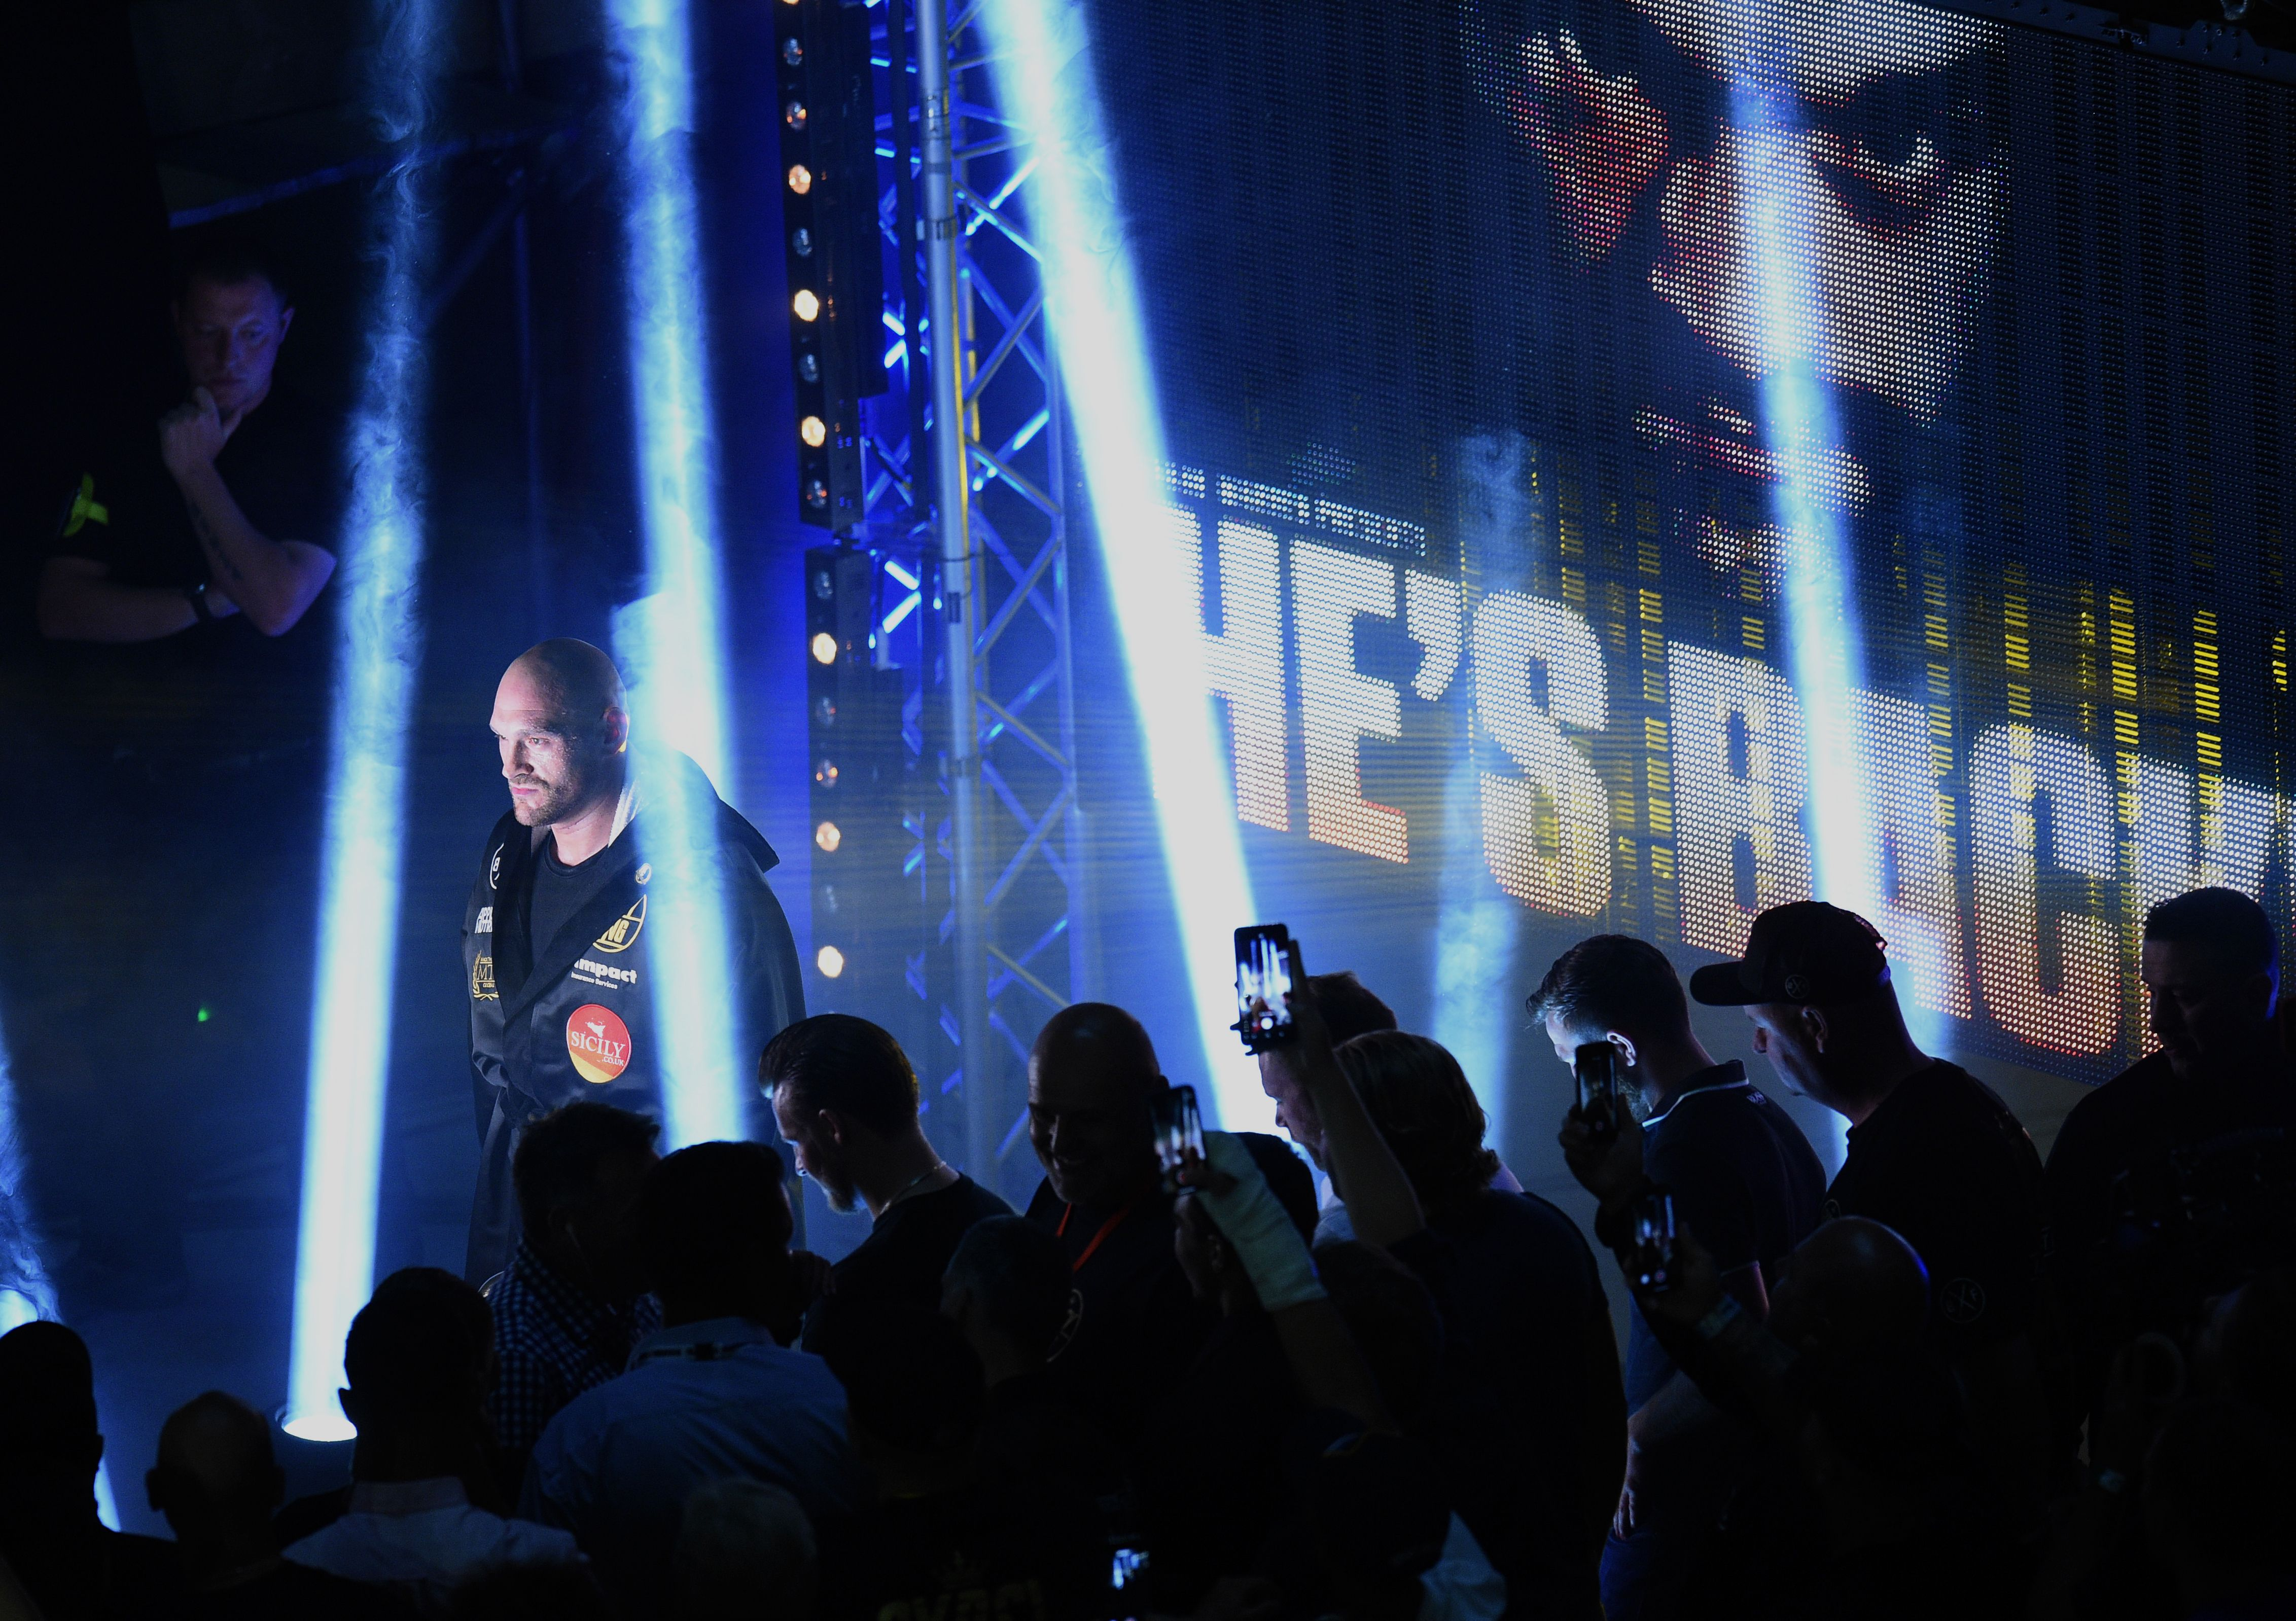 Tony Bellew predicts Tyson Fury cannot reclaim past glory and Anthony Joshua will smash Alexander Povetkin